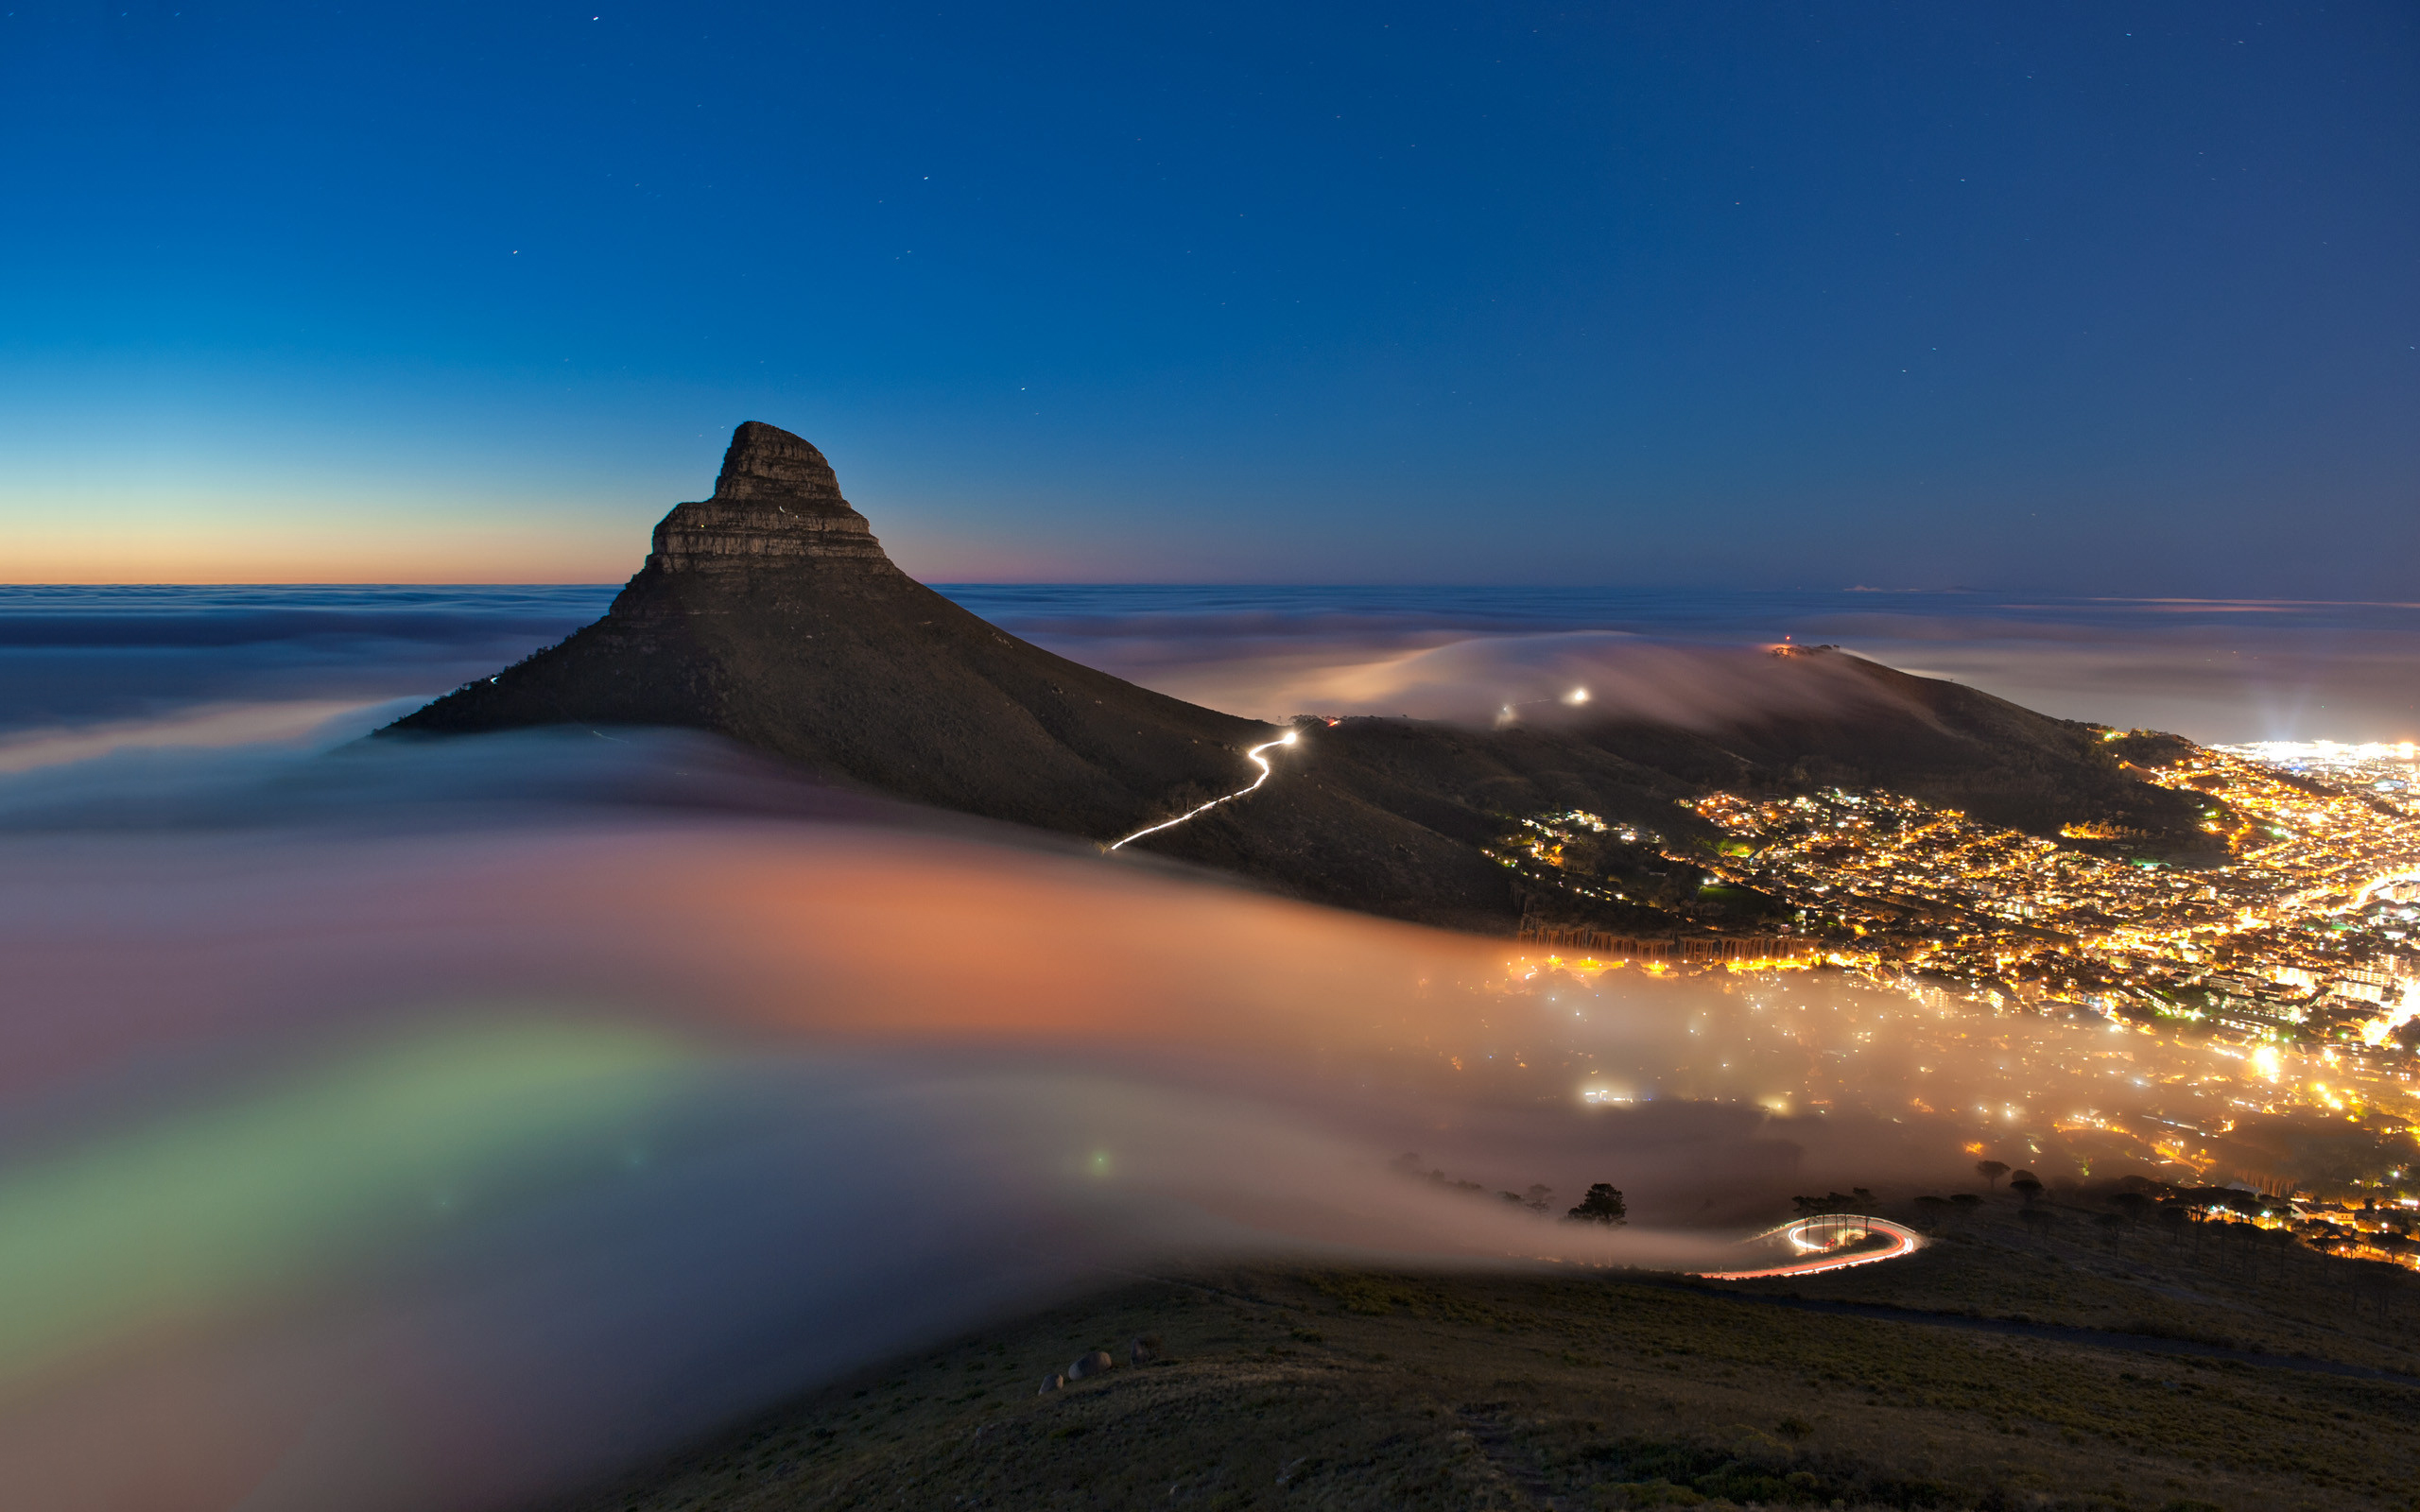 Cape town foggy night